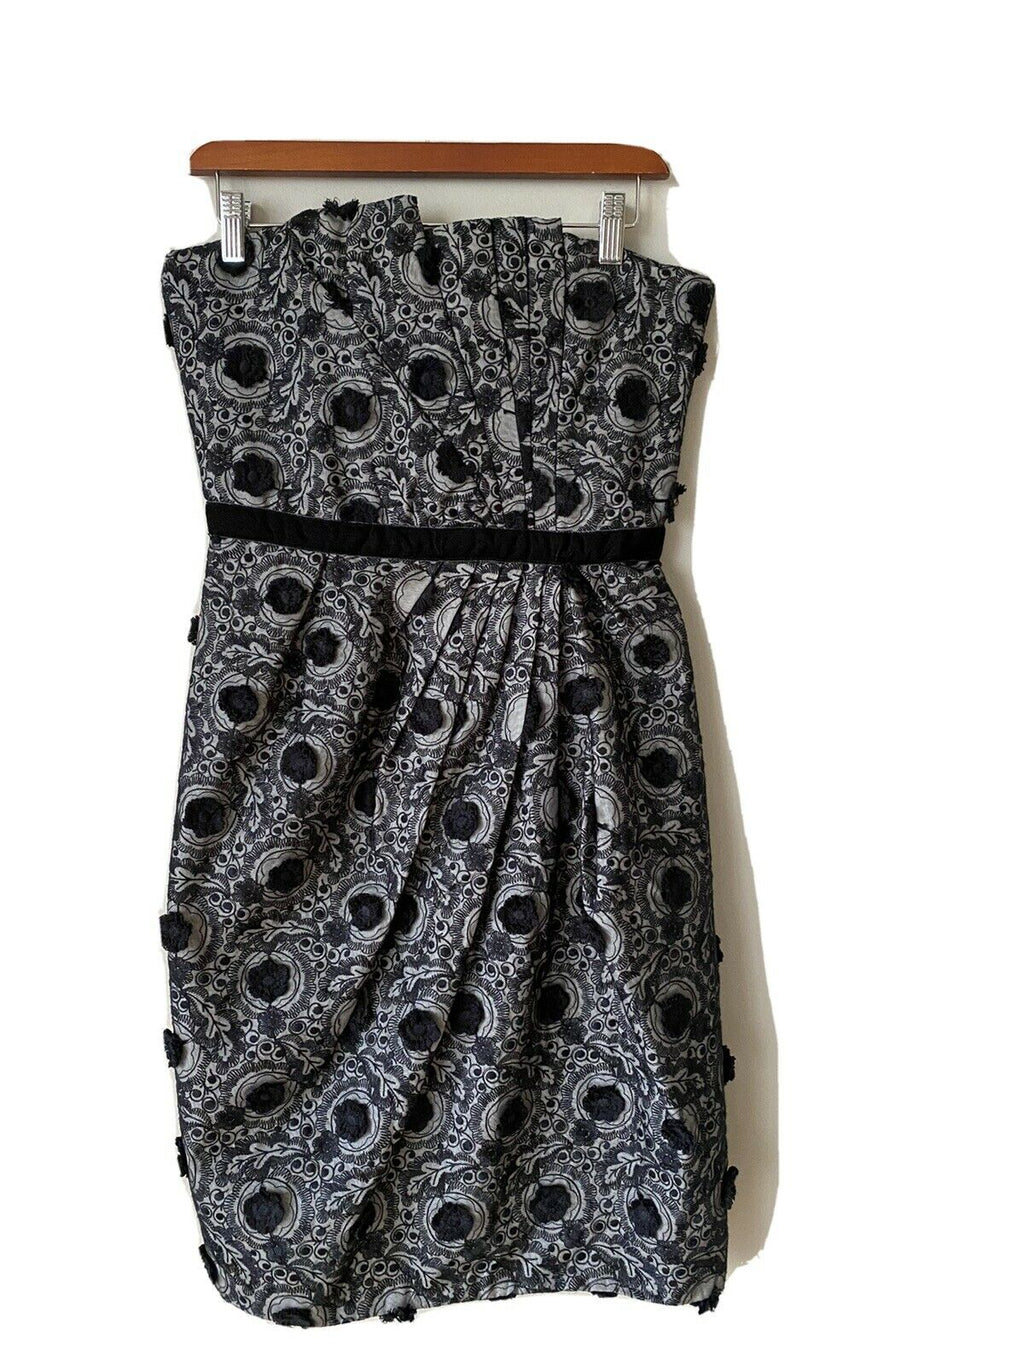 Marc by Marc Jacobs Women's Size 6 Small Gray Black Dress Strapless Ruffle Mini